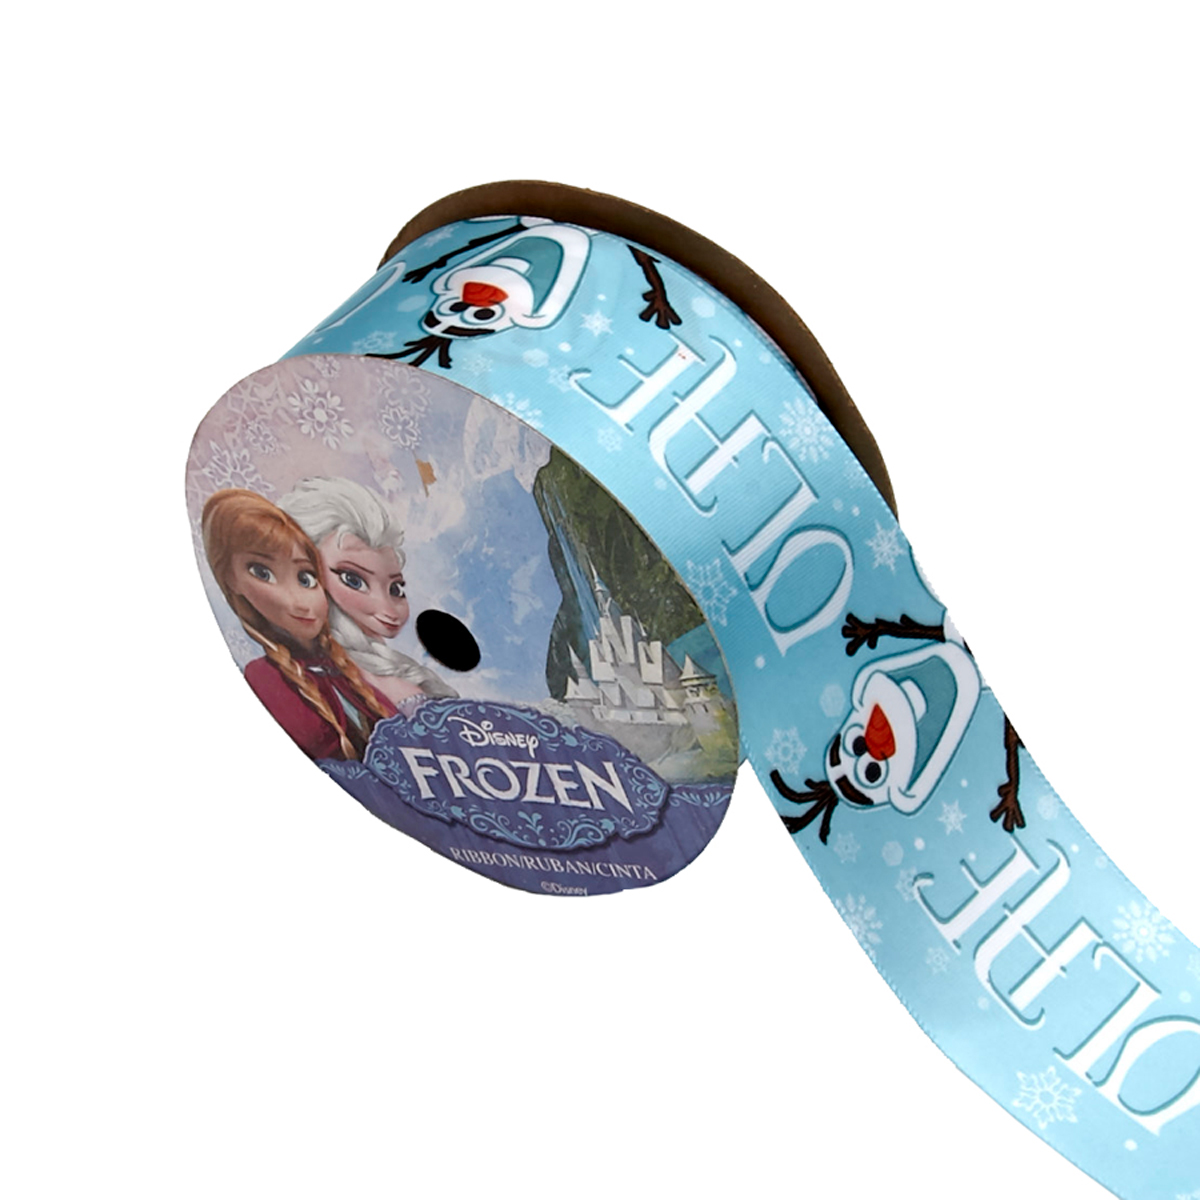 1 1/2'' Frozen Ribbon Olaf Name Blue 3YD Spool by Stardom Specialty in USA